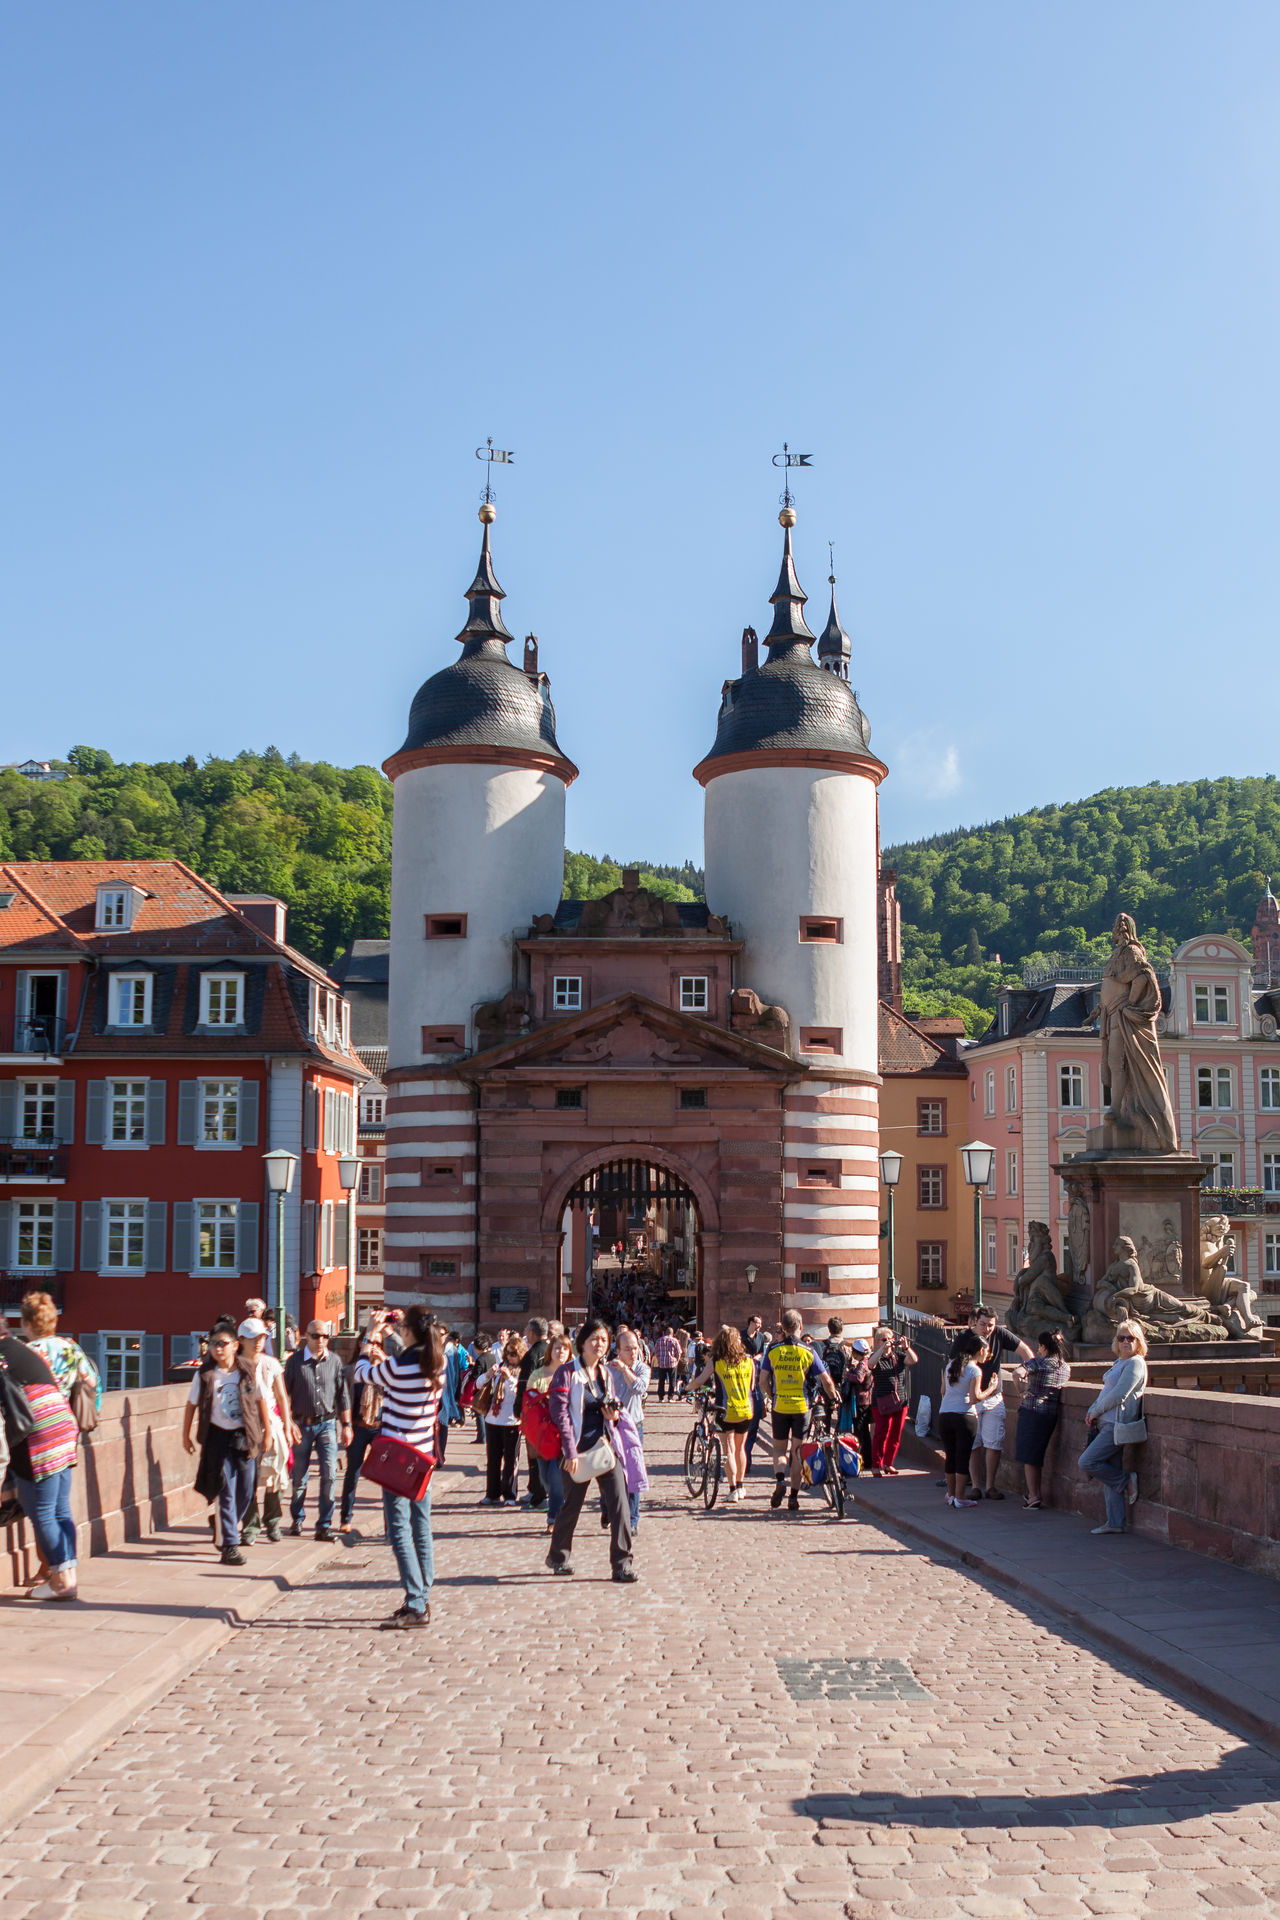 Alte Aula Alte Brücke Cable Car Castle City Day Elevated View Exterior View Germany Heidelberg Hills Historical Building Historical Sights Interior Views Mixed Age Range Old Bridge Outdoors Schloss Tourist Travel Destinations Travel Photography University University Campus Vinery